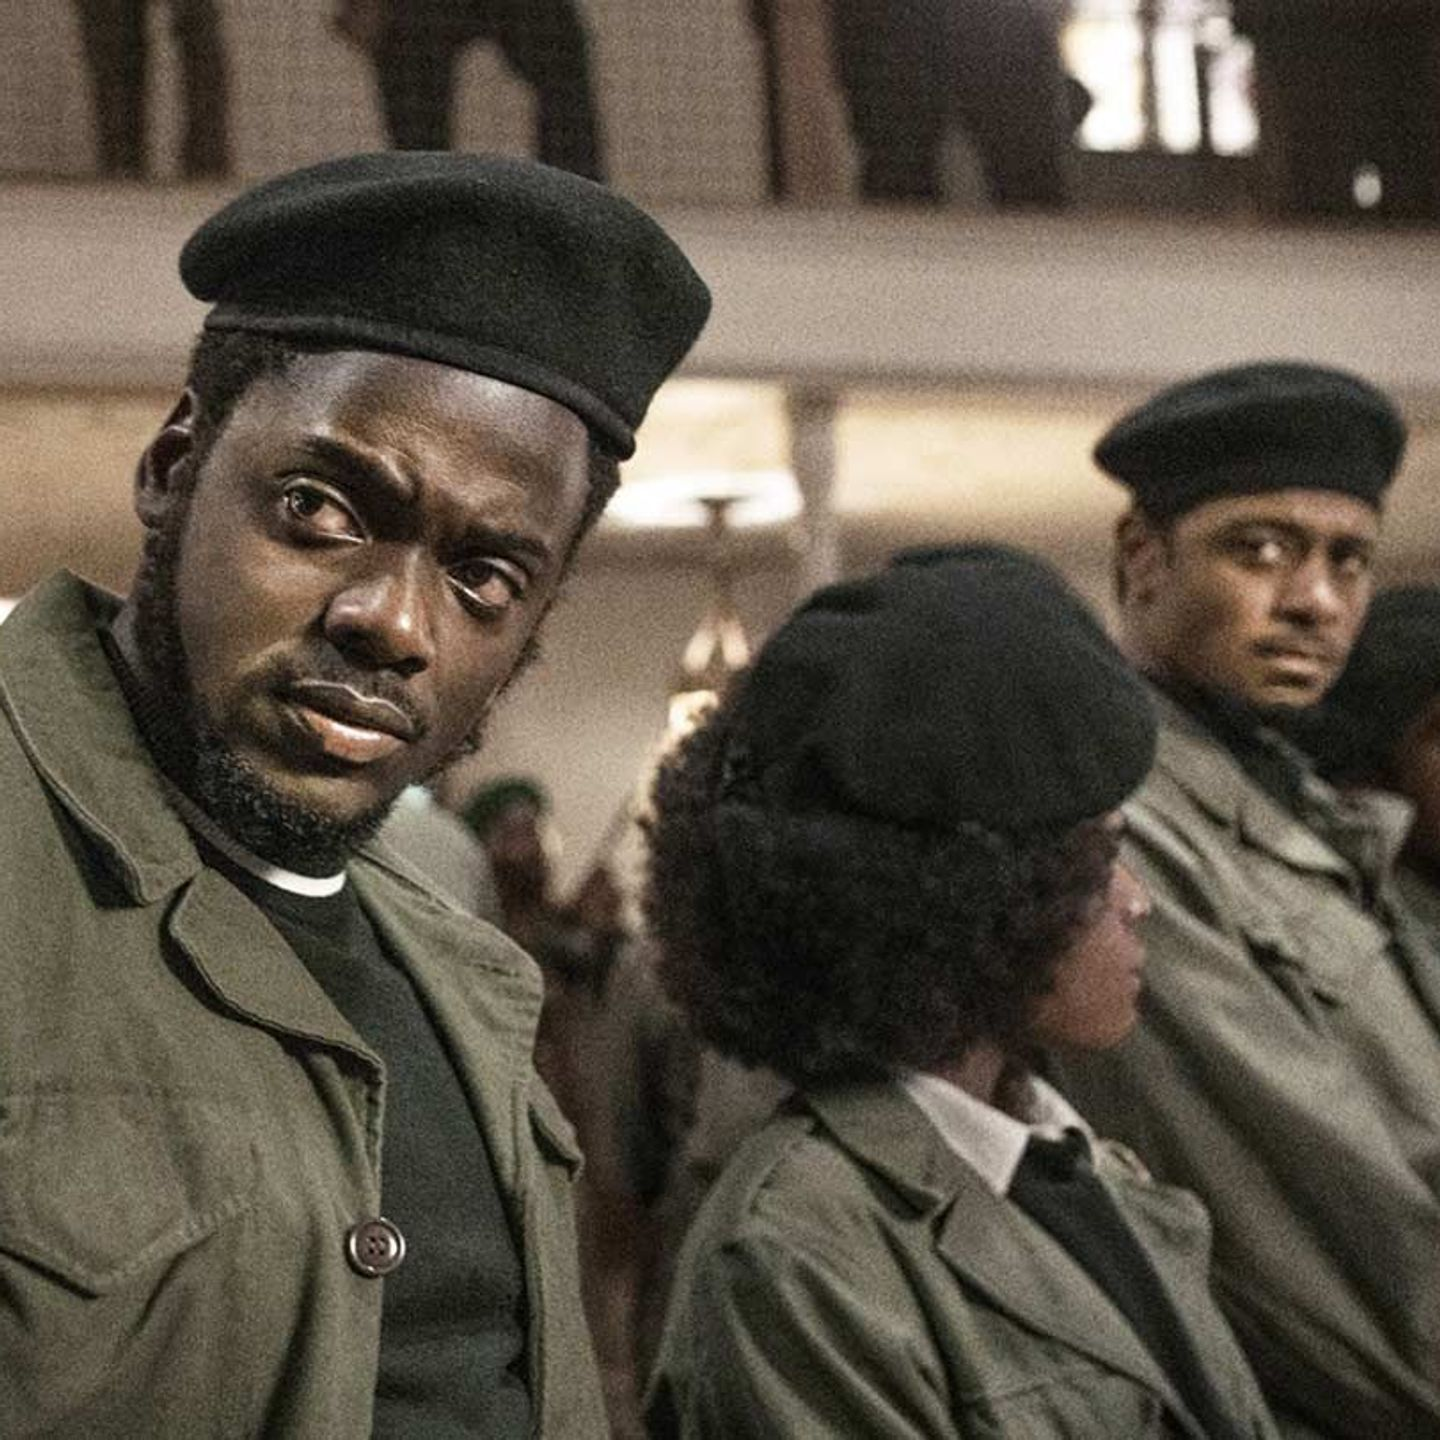 """Darrell Britt-Gibson, Daniel Kaluuya, and LaKeith Stanfield in """"Judas and the Black Messiah."""""""